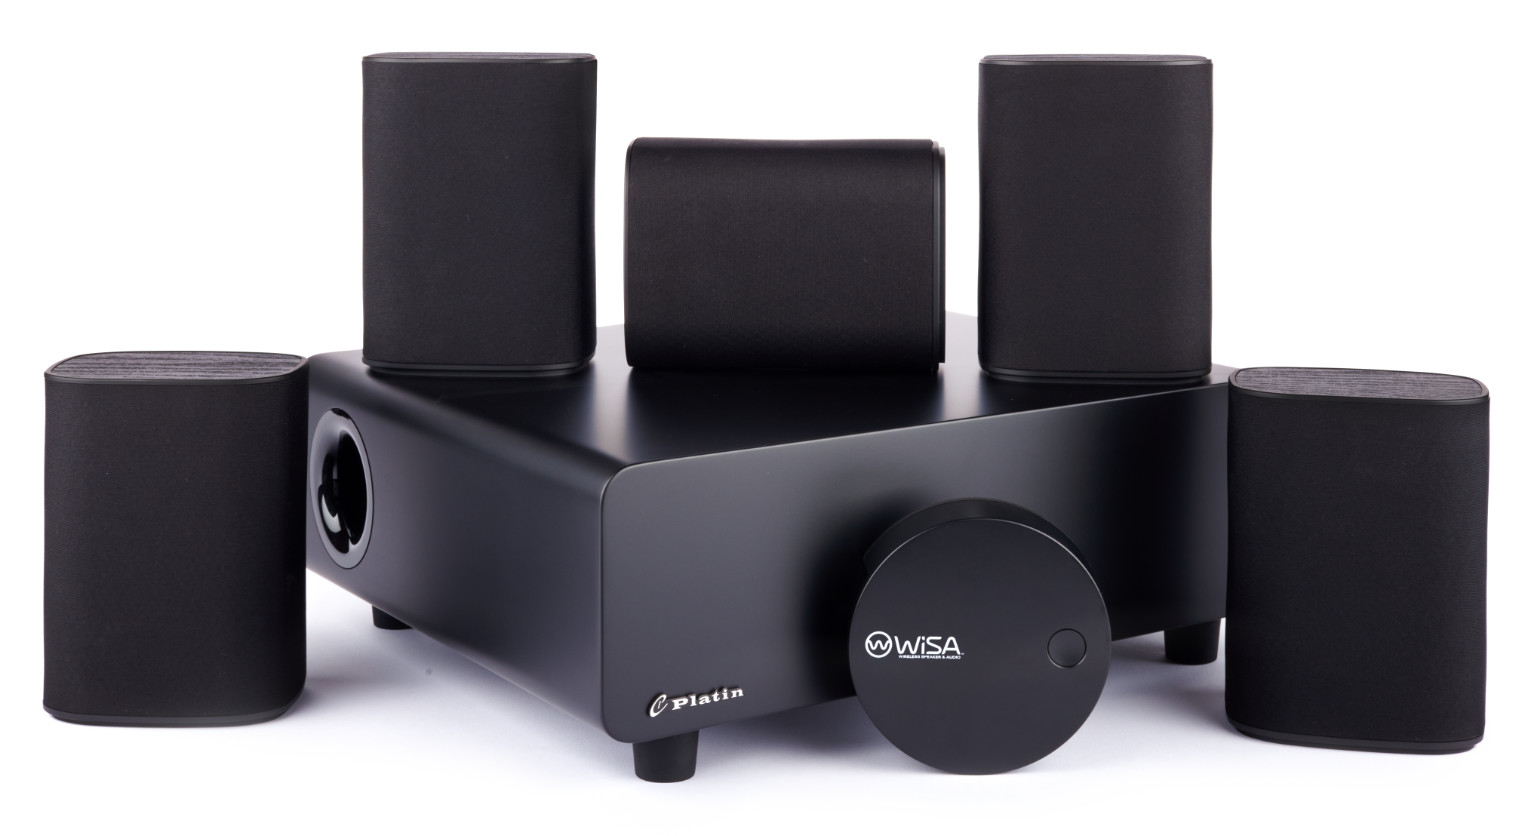 The Platin Milan 5.1 wireless audio system features one subwoofer, one center satellite speaker, two front satellite speakers, and two rear satellite speakers, and one WiSA SoundSend wireless audio transmitter. Components are very compact, black, and stylish.